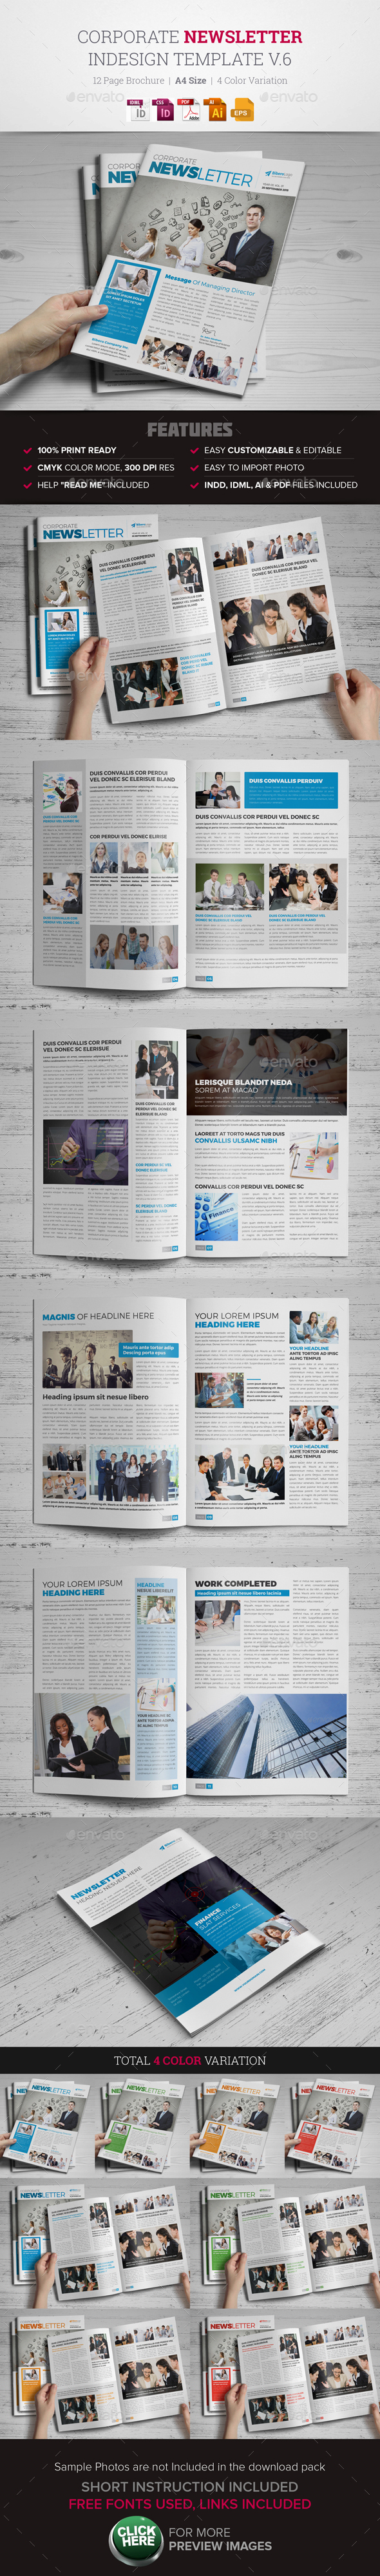 Newsletter Indesign Template v6 - Newsletters Print Templates